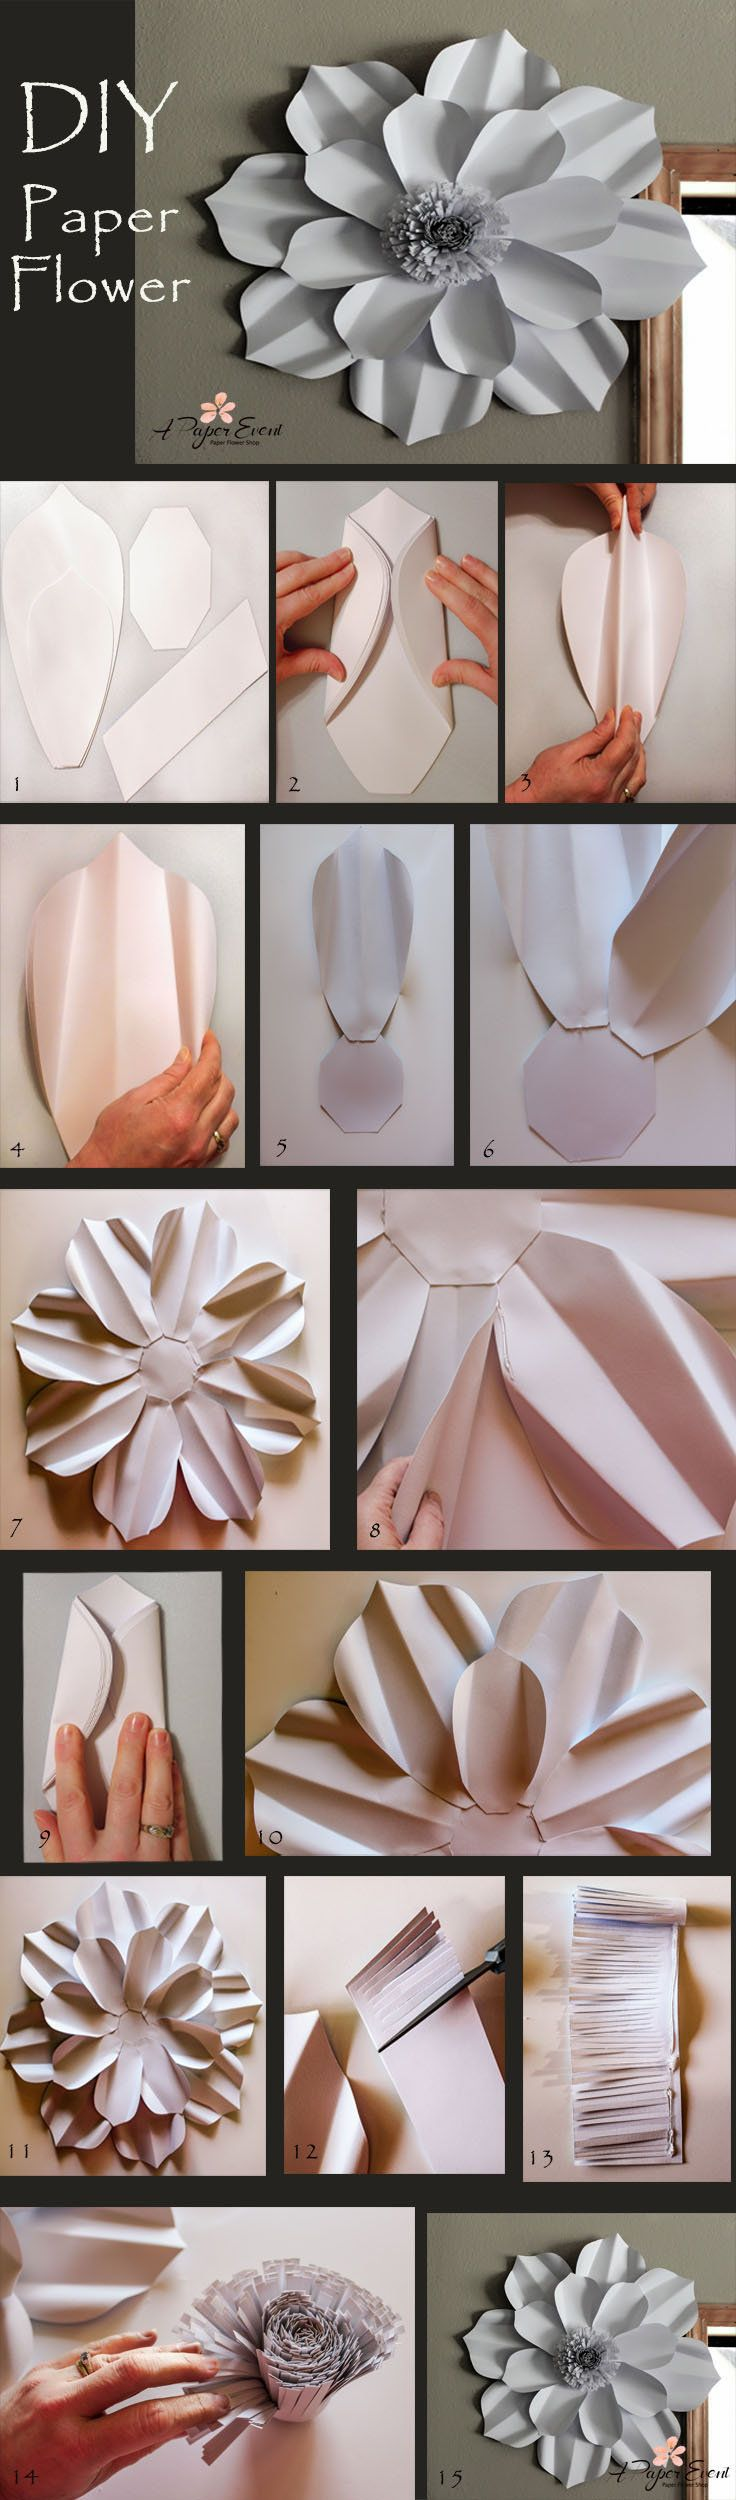 best Paper Flowers images on Pinterest  Giant paper flowers